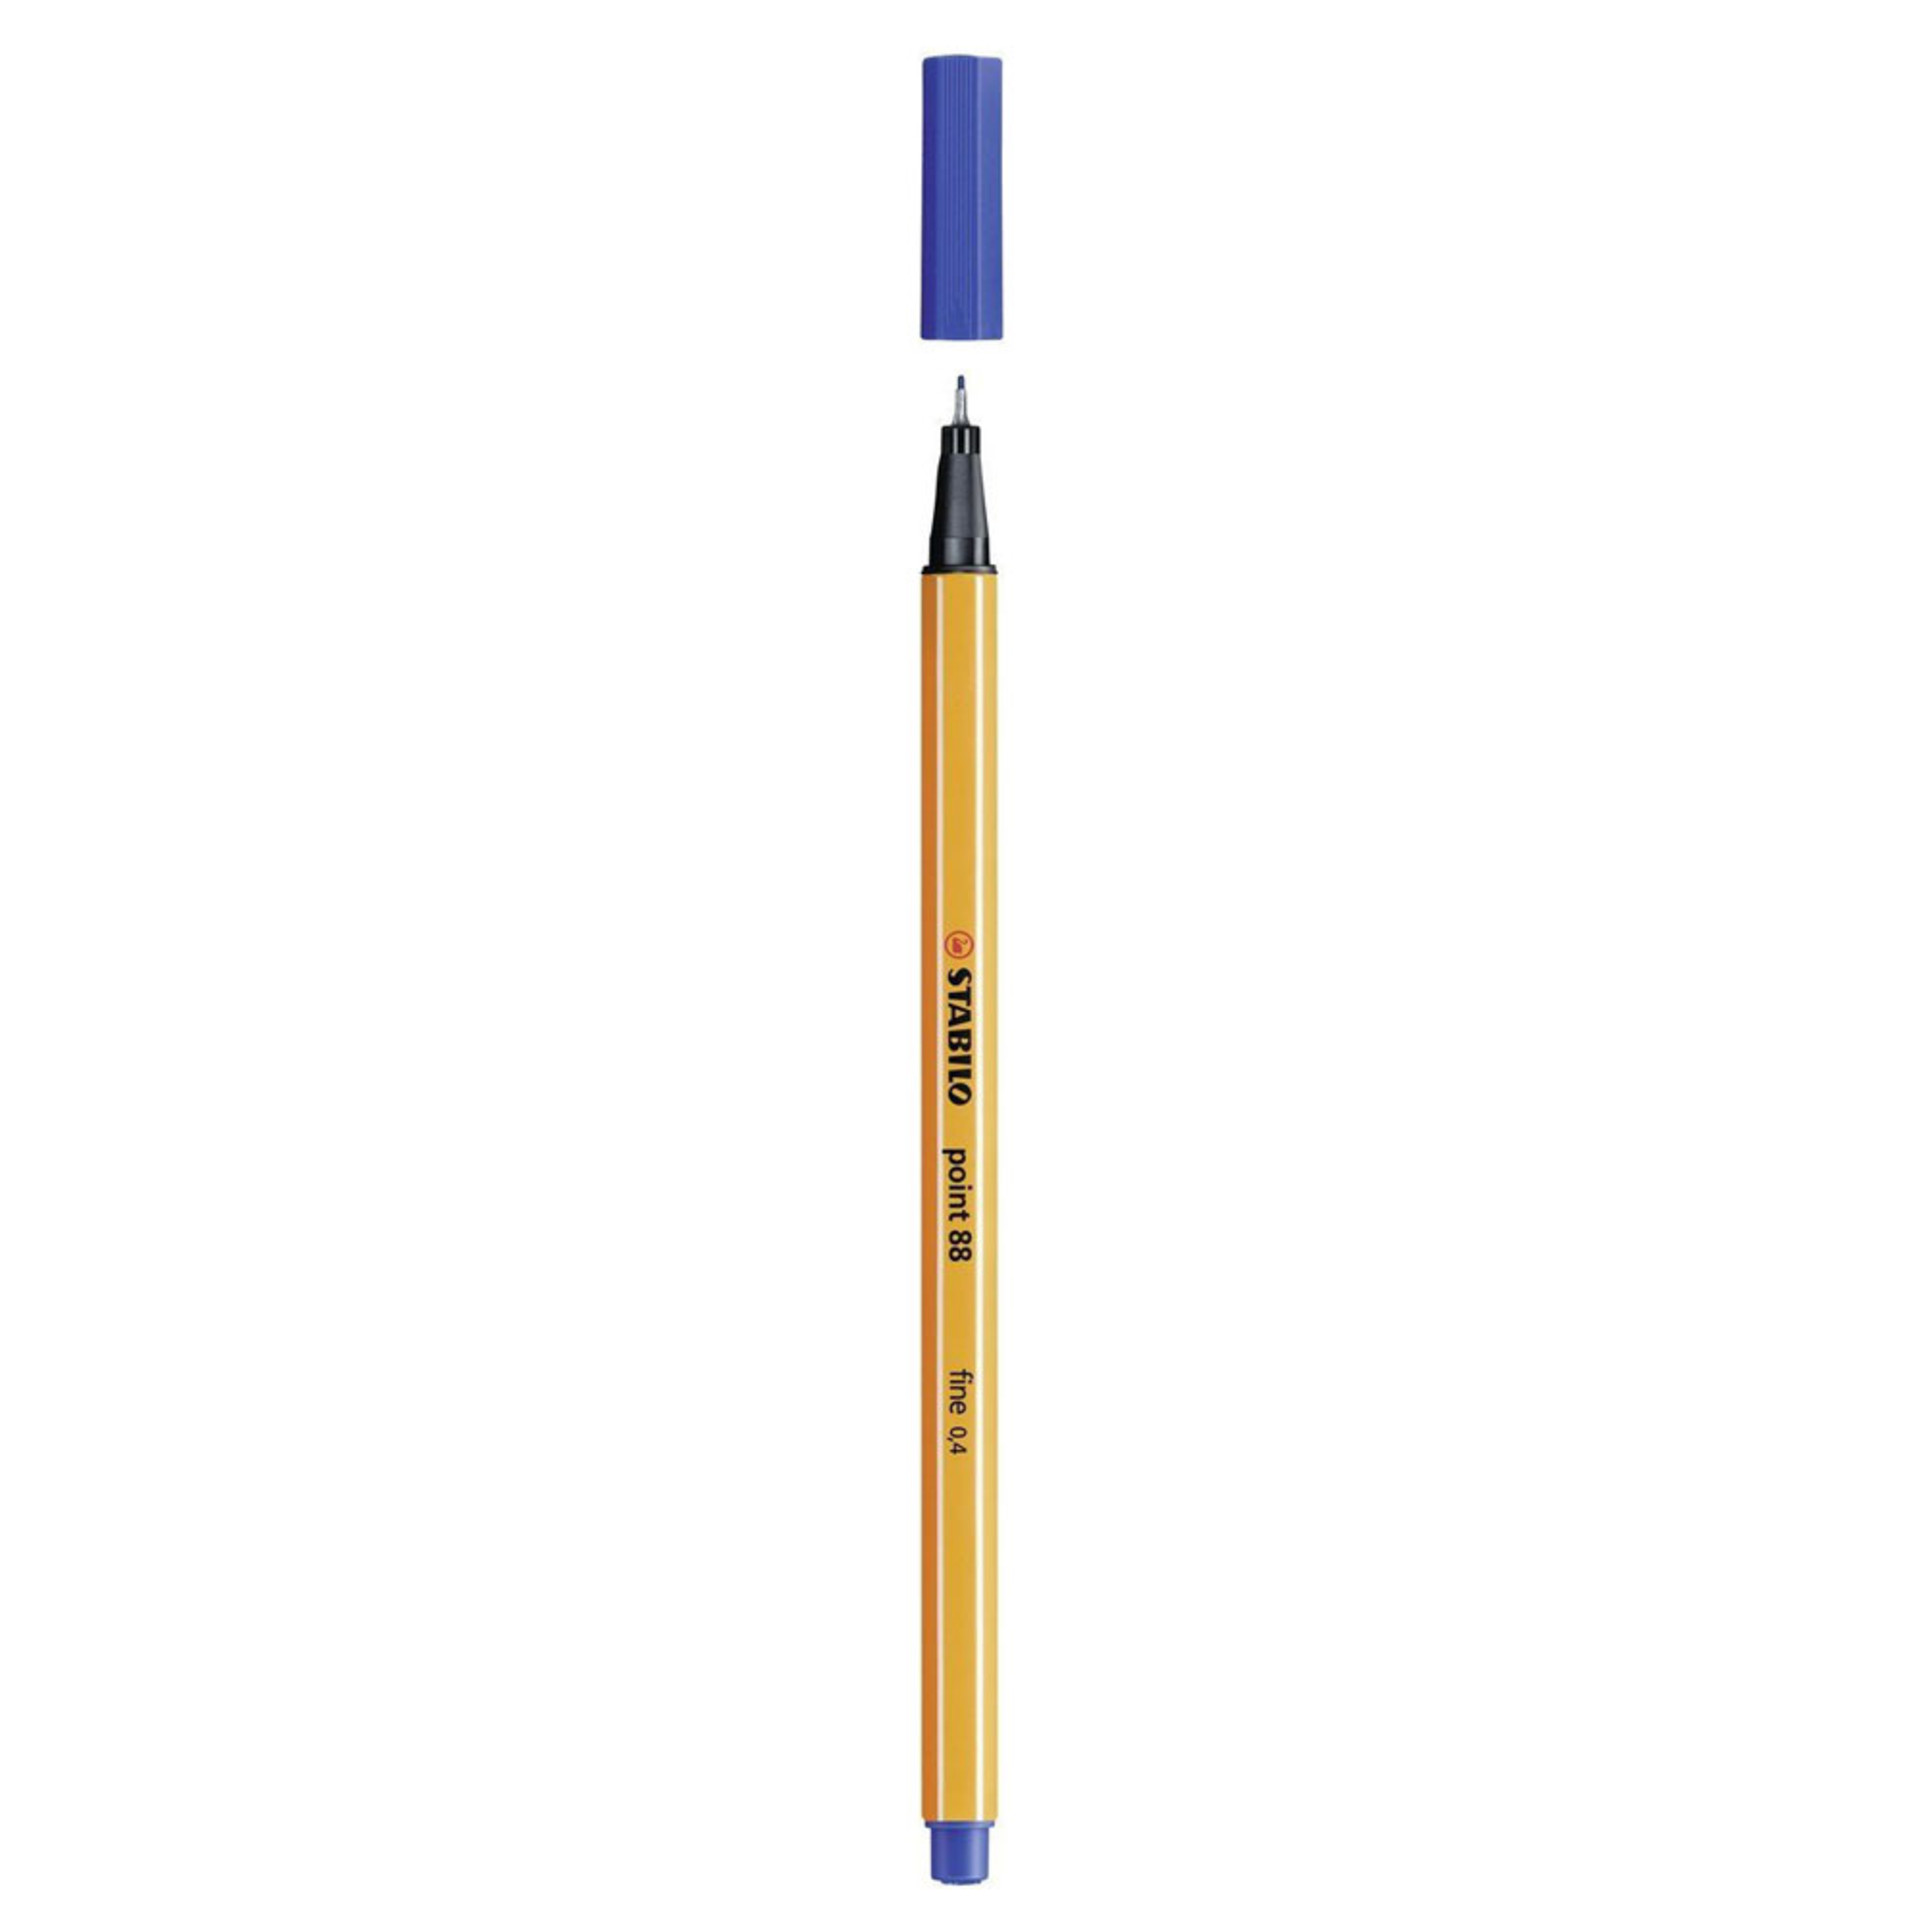 Stabilo Point 88 .4mm Fineliner Pen – Dark Blue